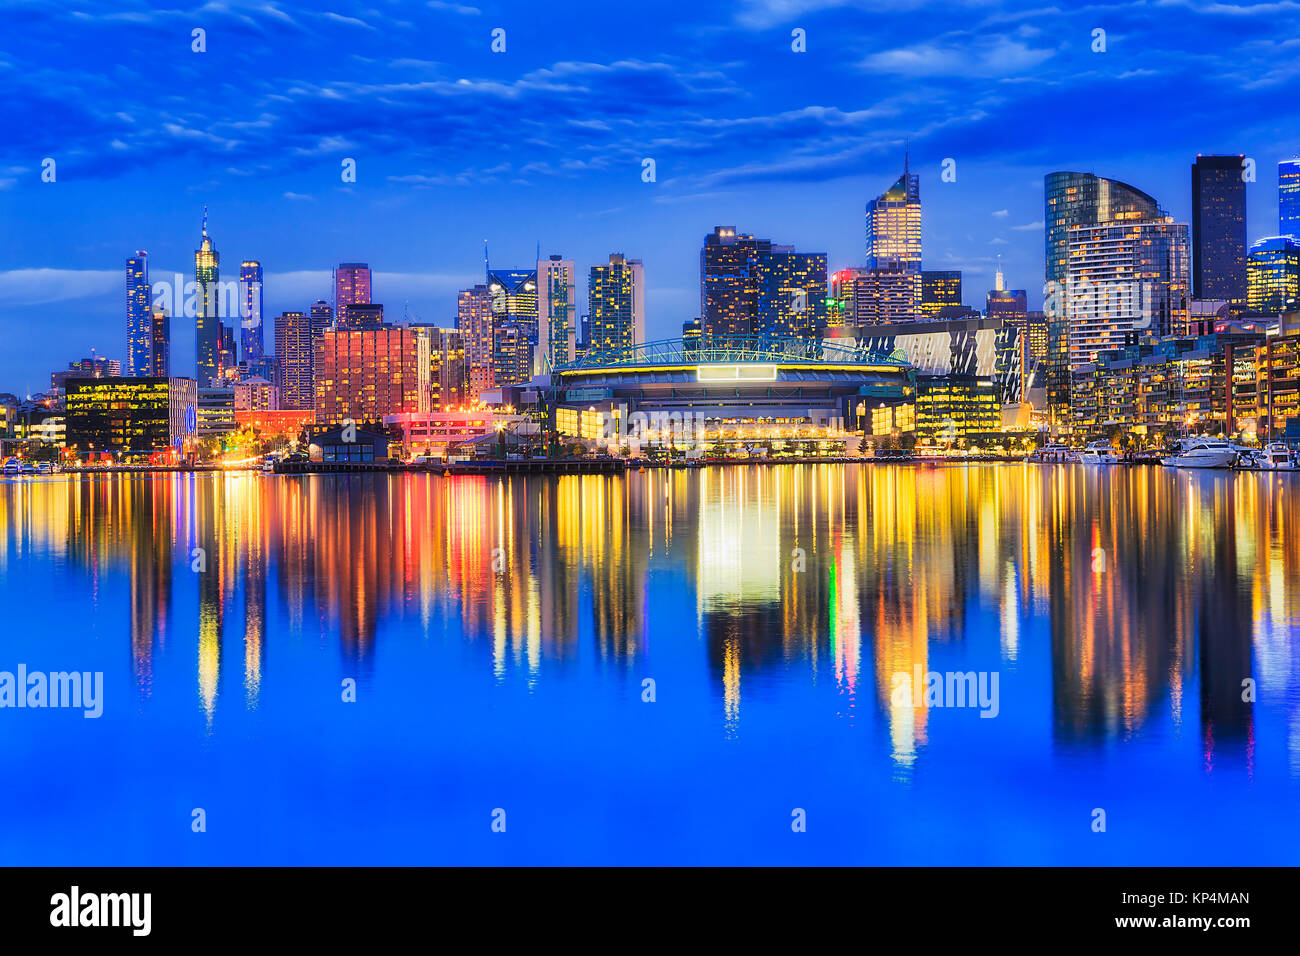 Bright iilluminated waterfront urban architecture of Docklands suburbs in Melbourne reflecting in still waters of - Stock Image